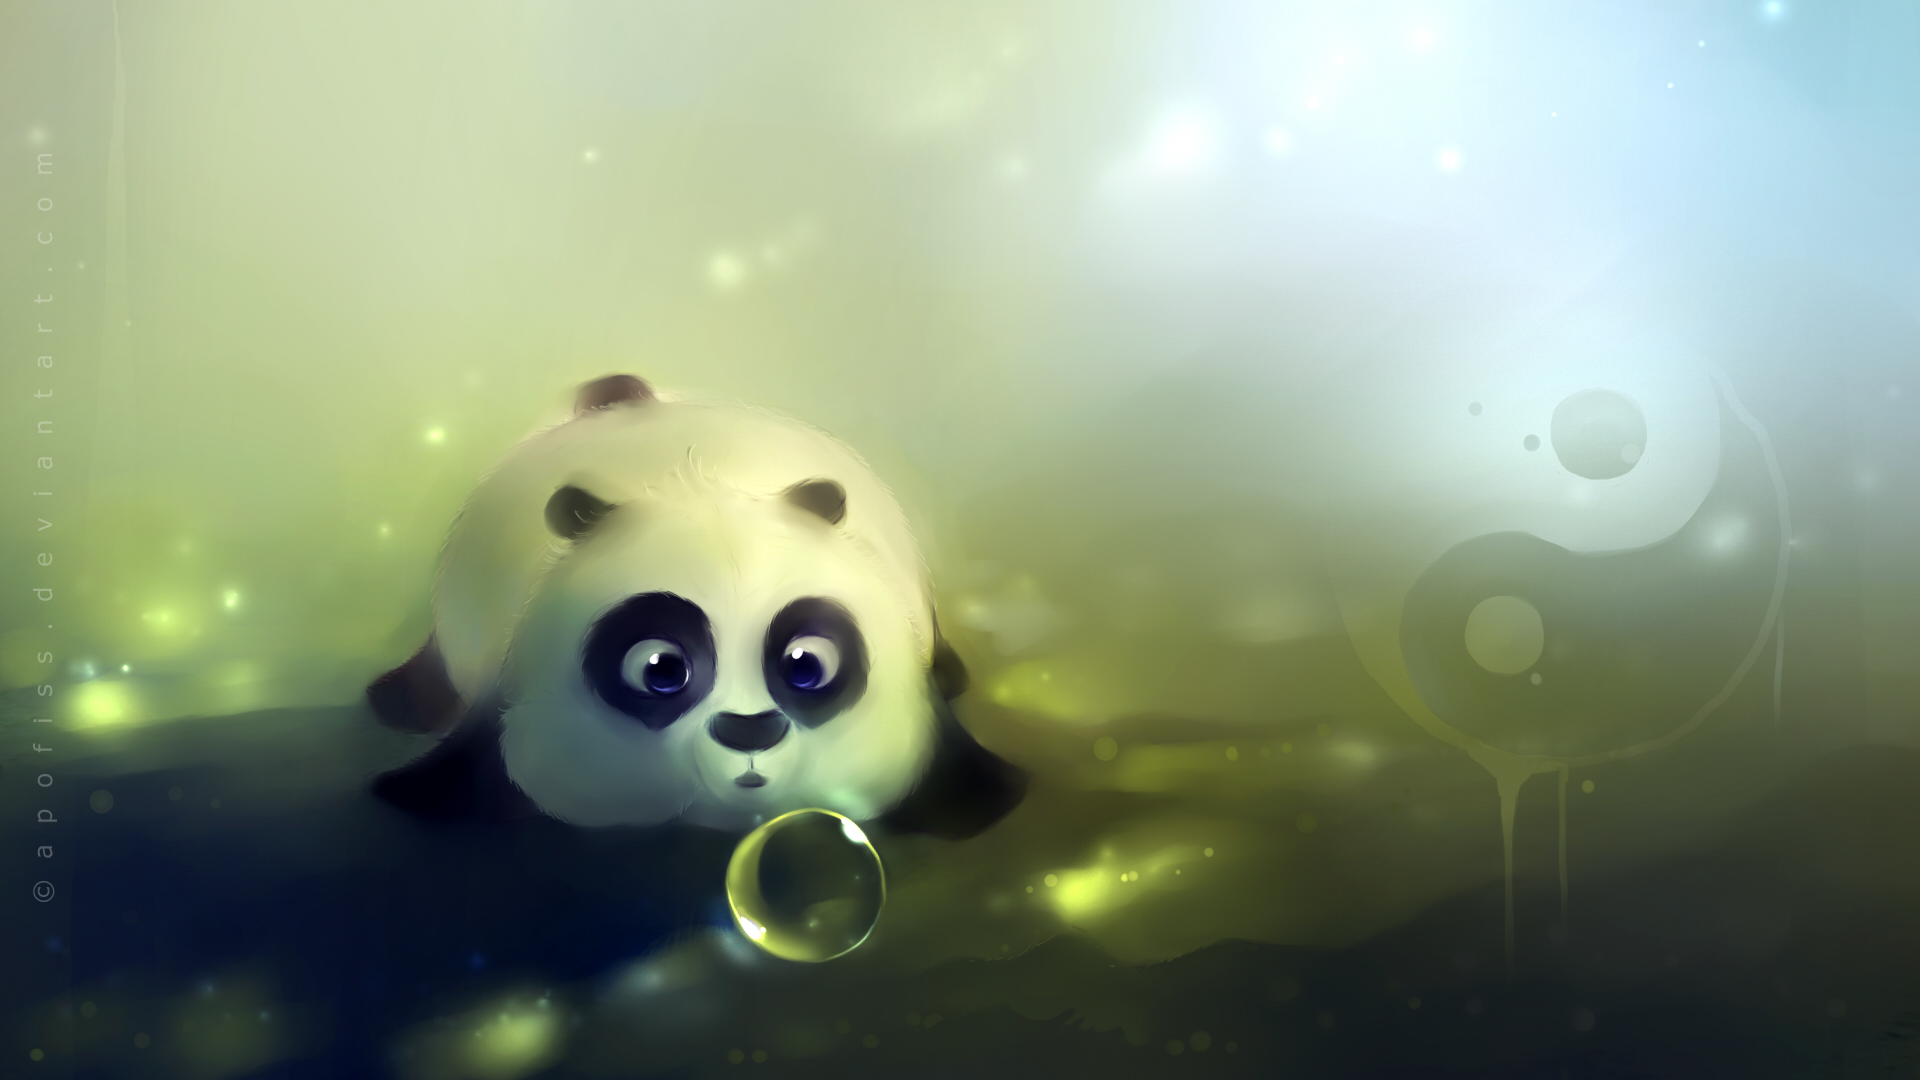 Panda Wallpaper HD Image Picture